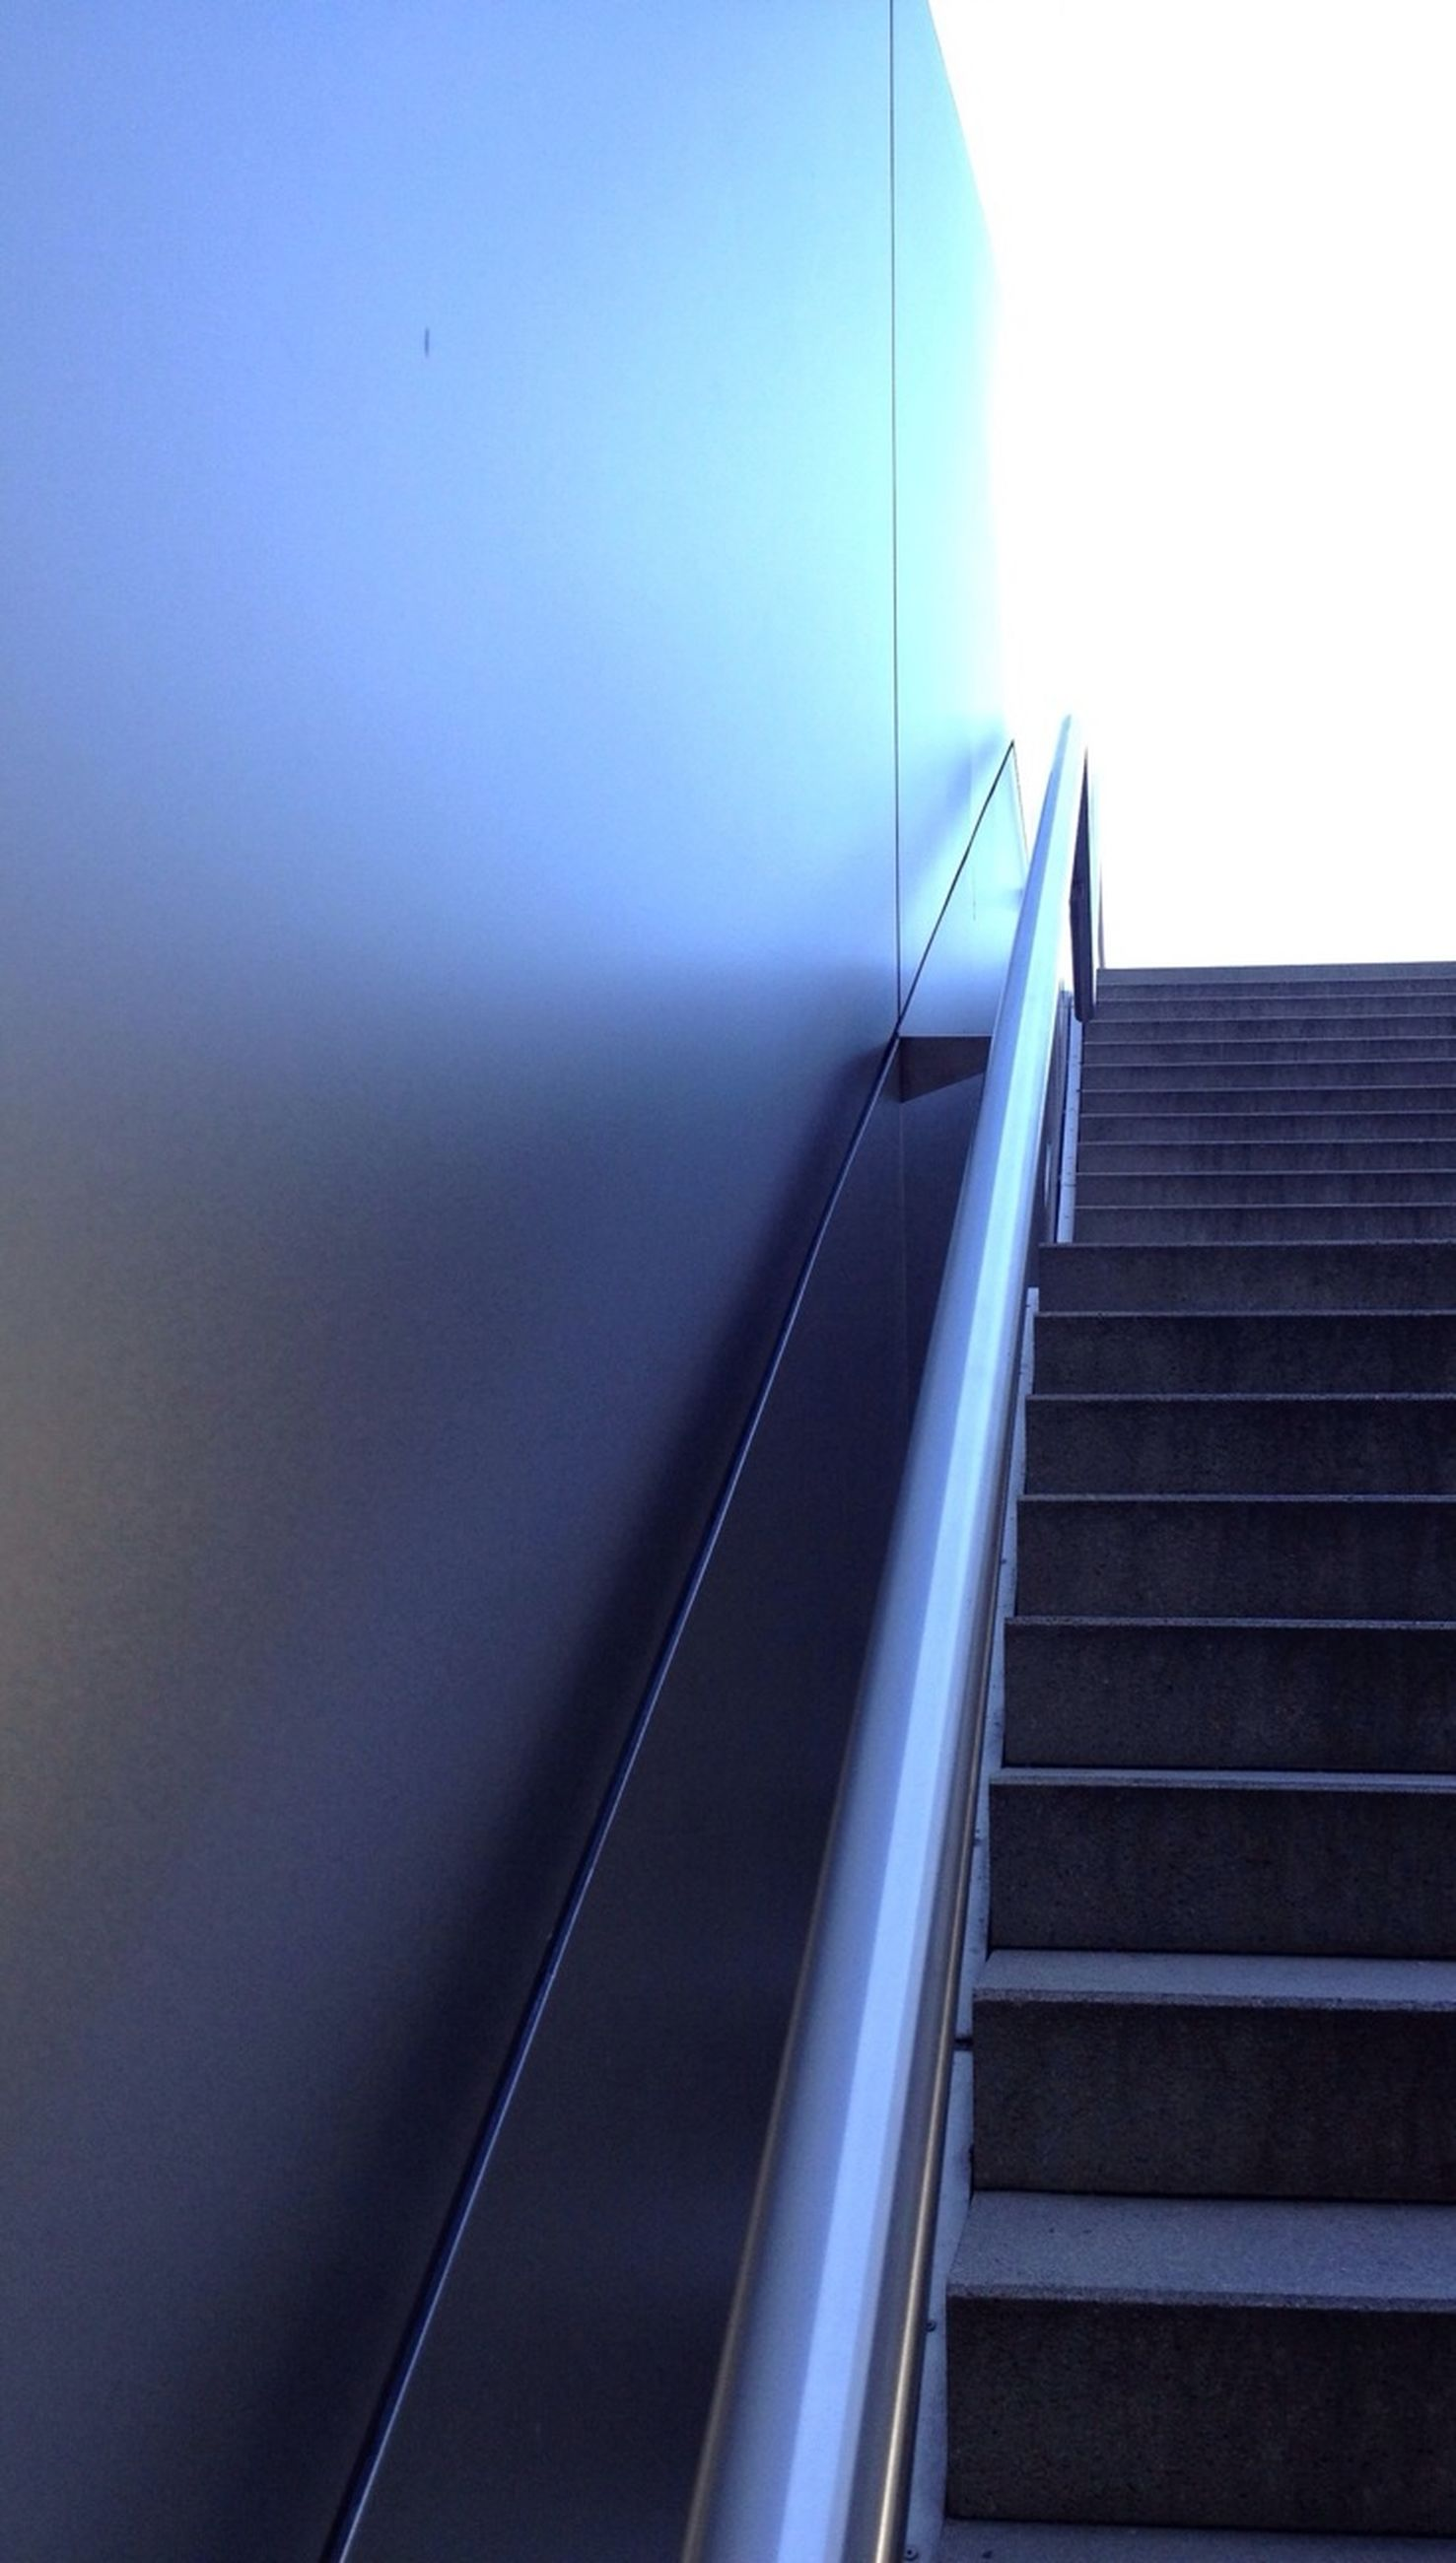 steps, steps and staircases, low angle view, staircase, indoors, built structure, escalator, railing, architecture, transportation, wall - building feature, the way forward, no people, diminishing perspective, modern, technology, day, building exterior, clear sky, sunlight